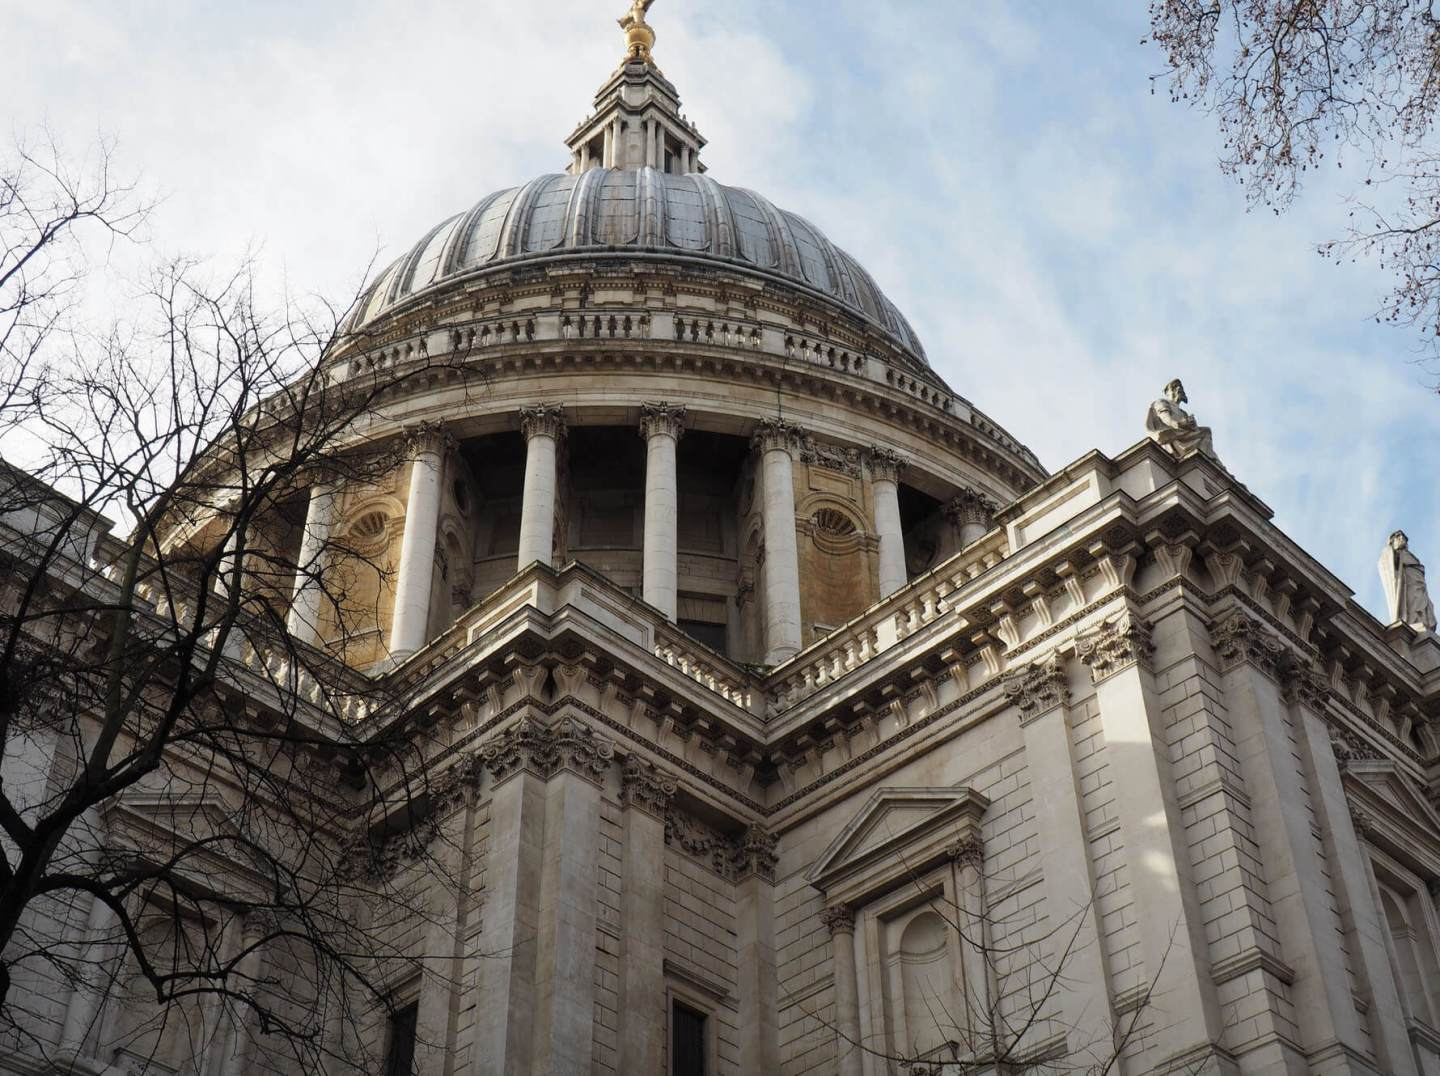 Tourist Spots In London You Can't Ignore